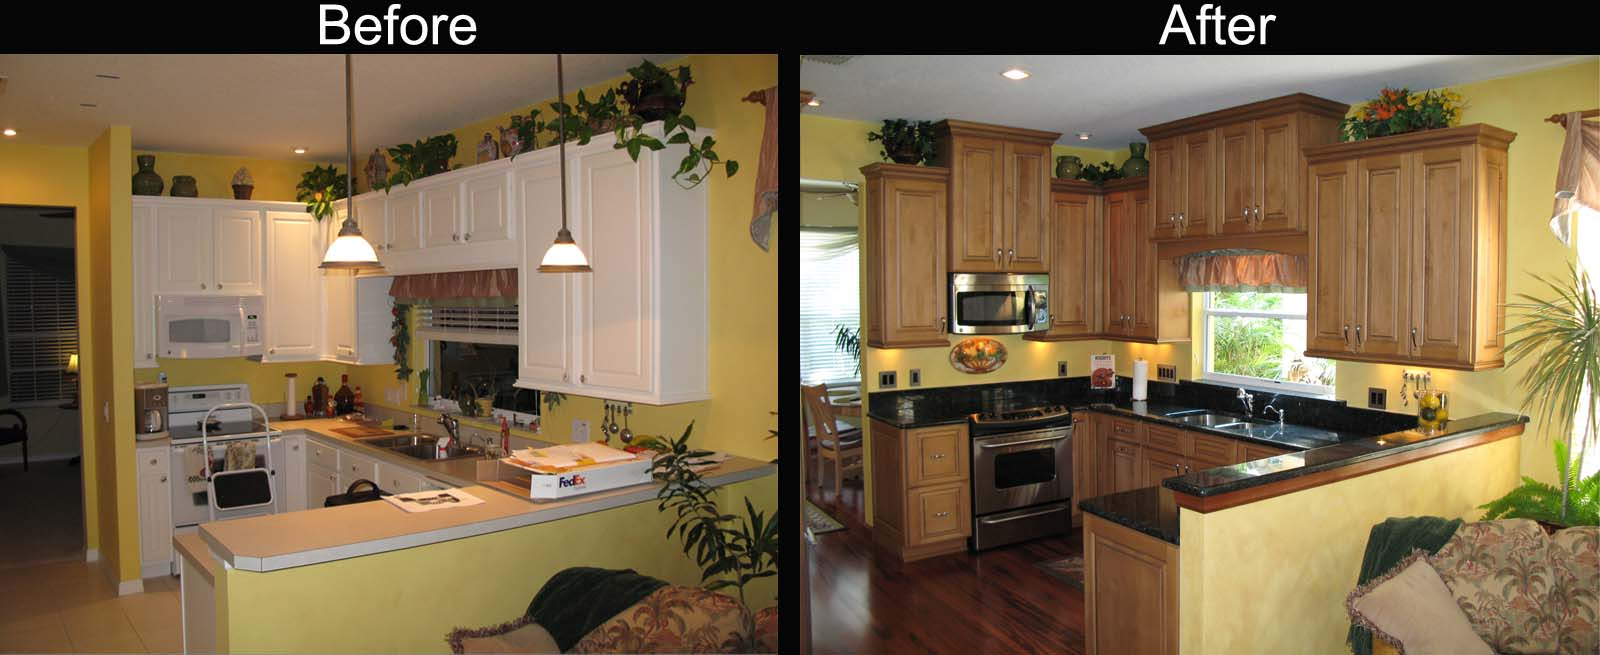 Kitchen decor kitchen remodel before and after for Kitchen renovation before and after